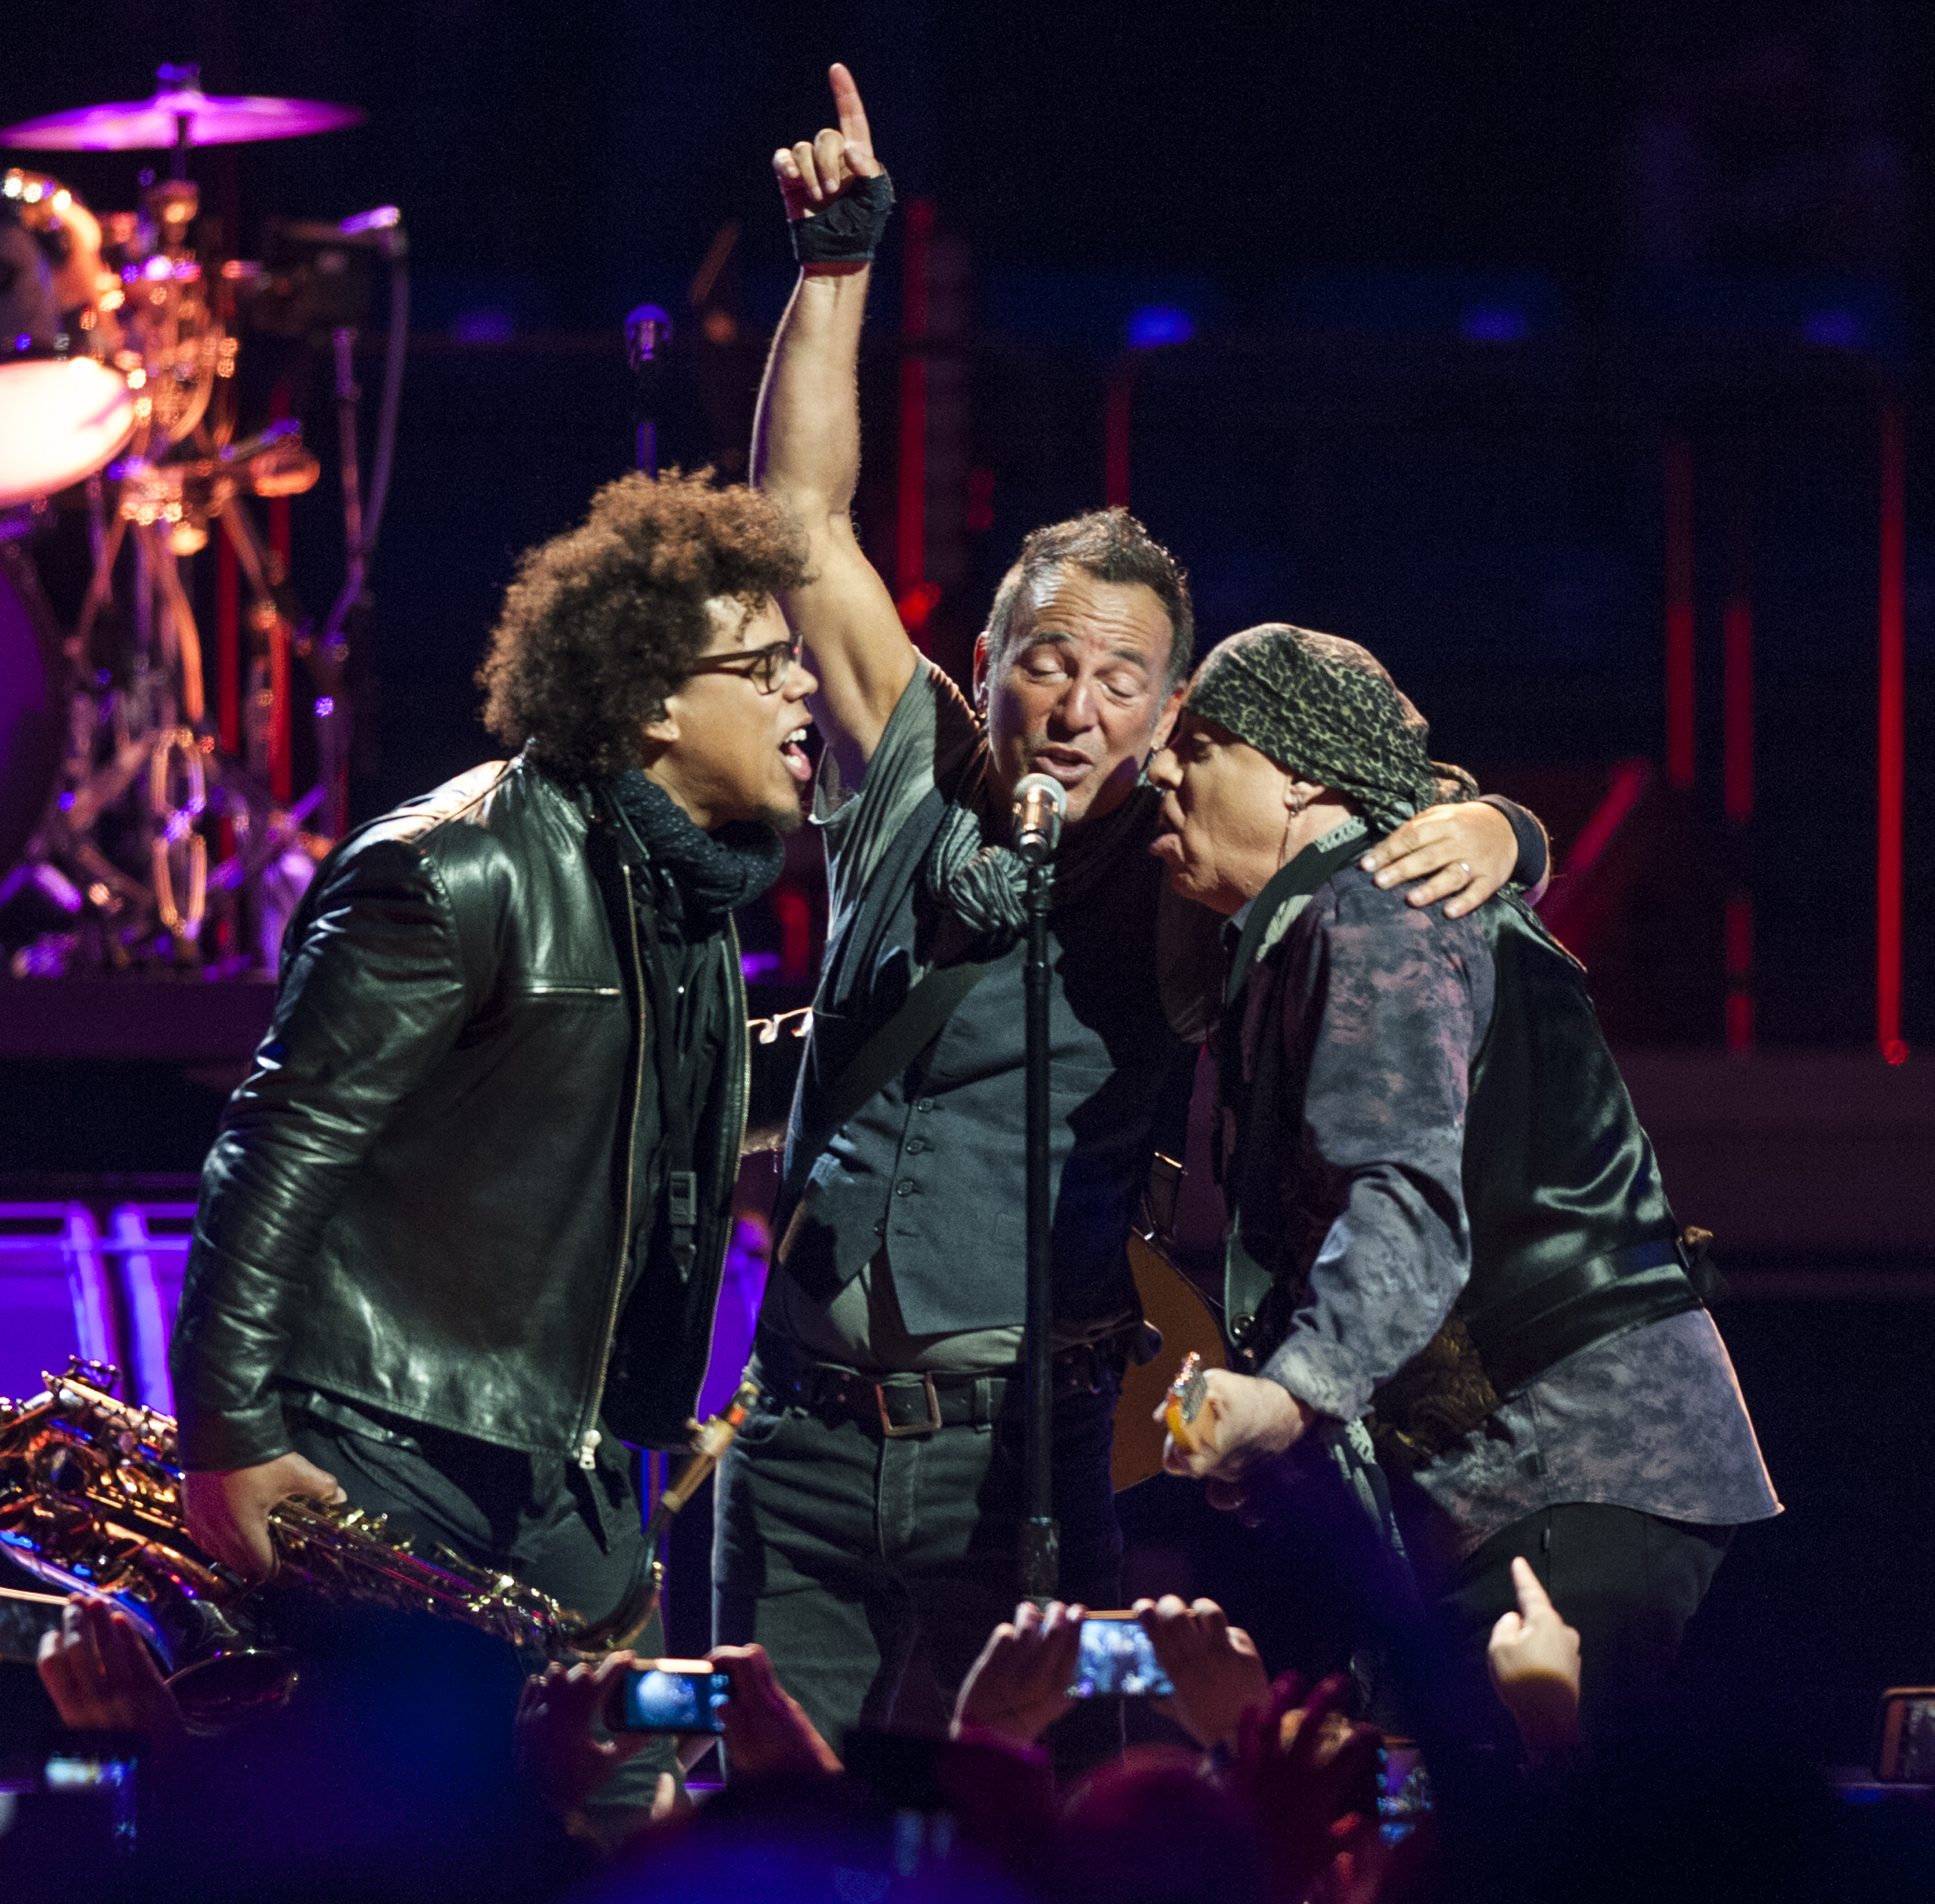 From left to right: Jake Clemons, Bruce Springsteen, and Stevie Van Zandt perform with the E Street Band at the Bryce Jordan Center on Monday, April 18, 2016.